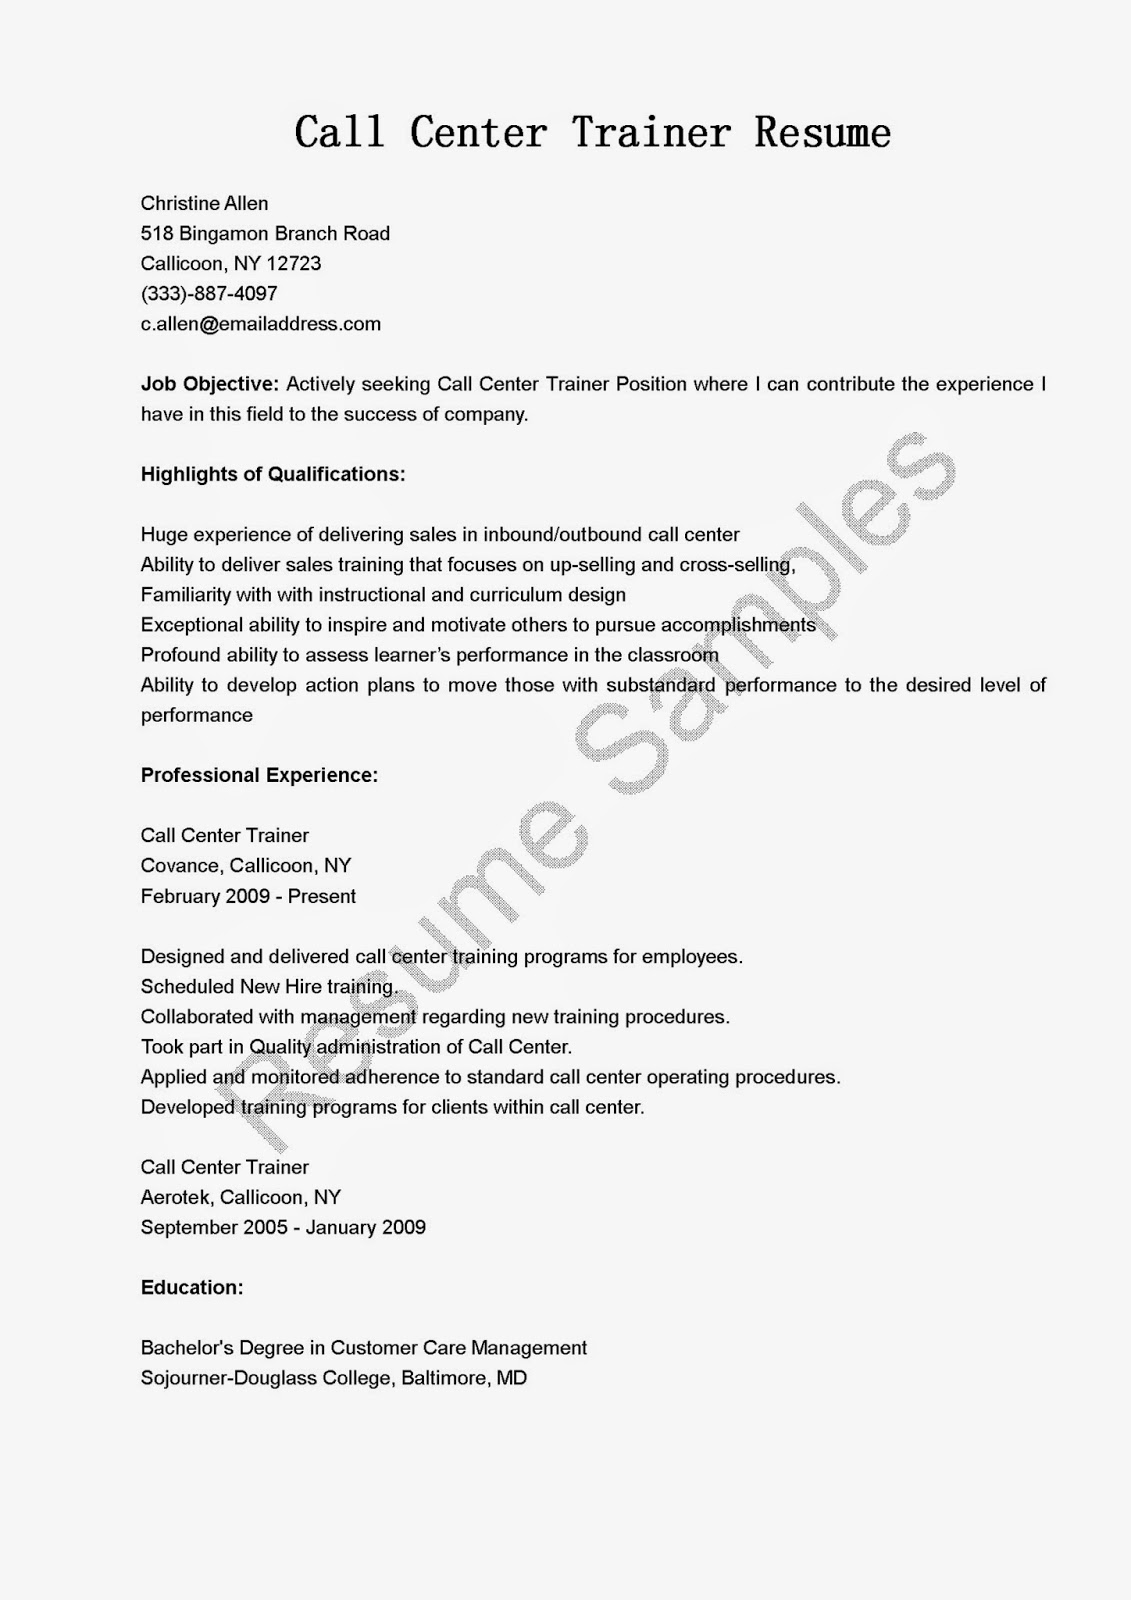 resume sles call center trainer resume sle